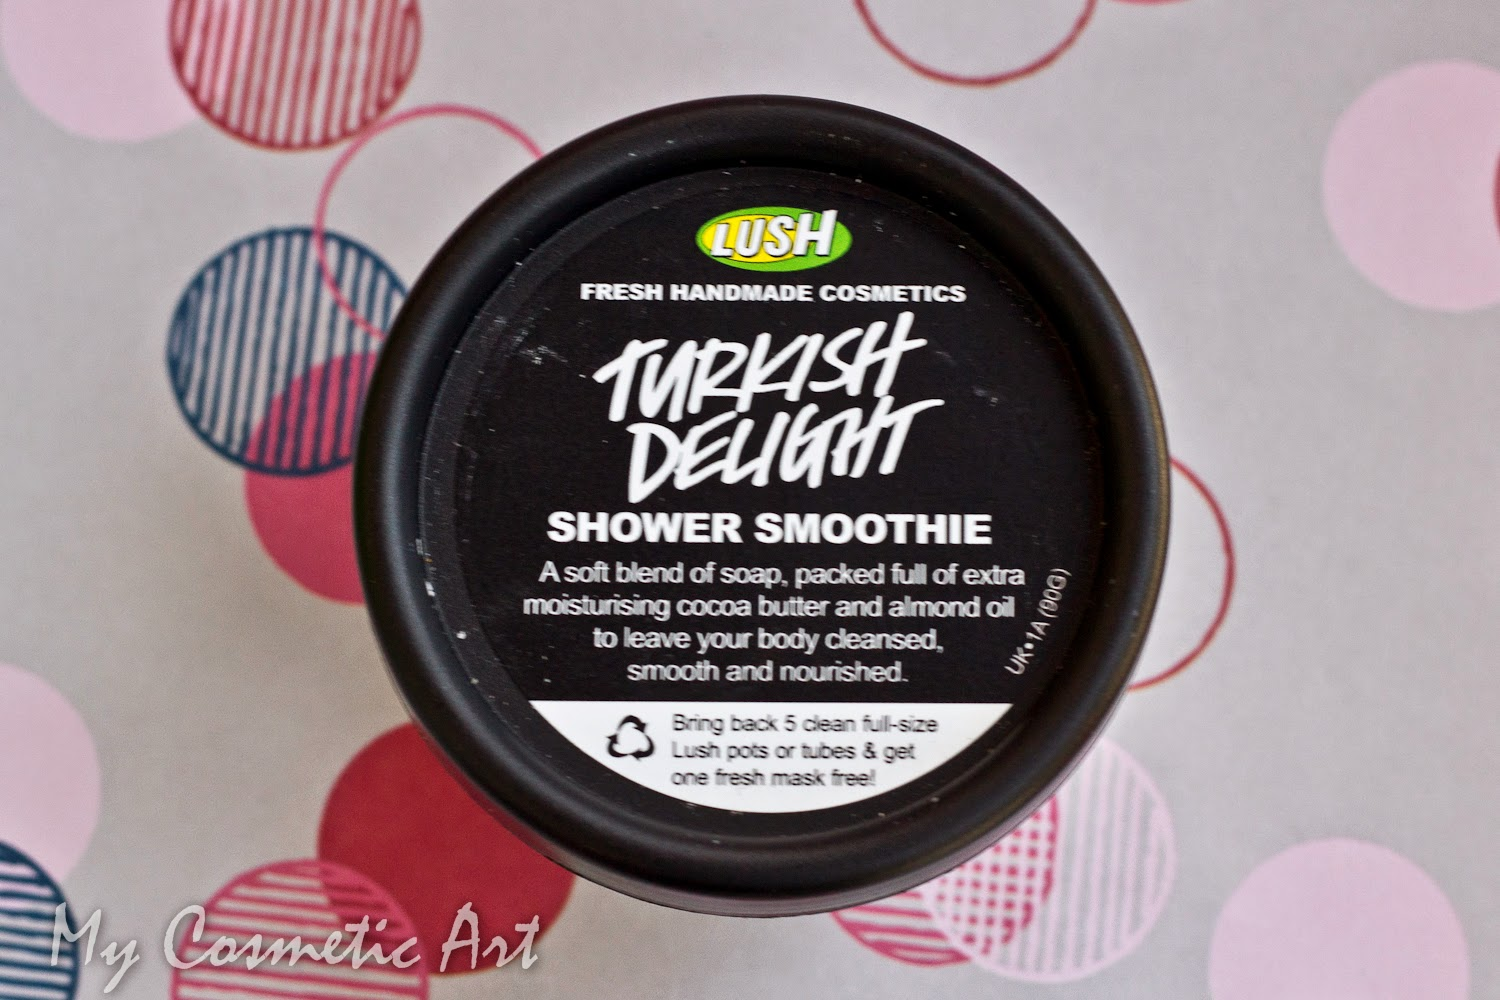 Turkish Delight de Lush jabón en crema shower smoothie